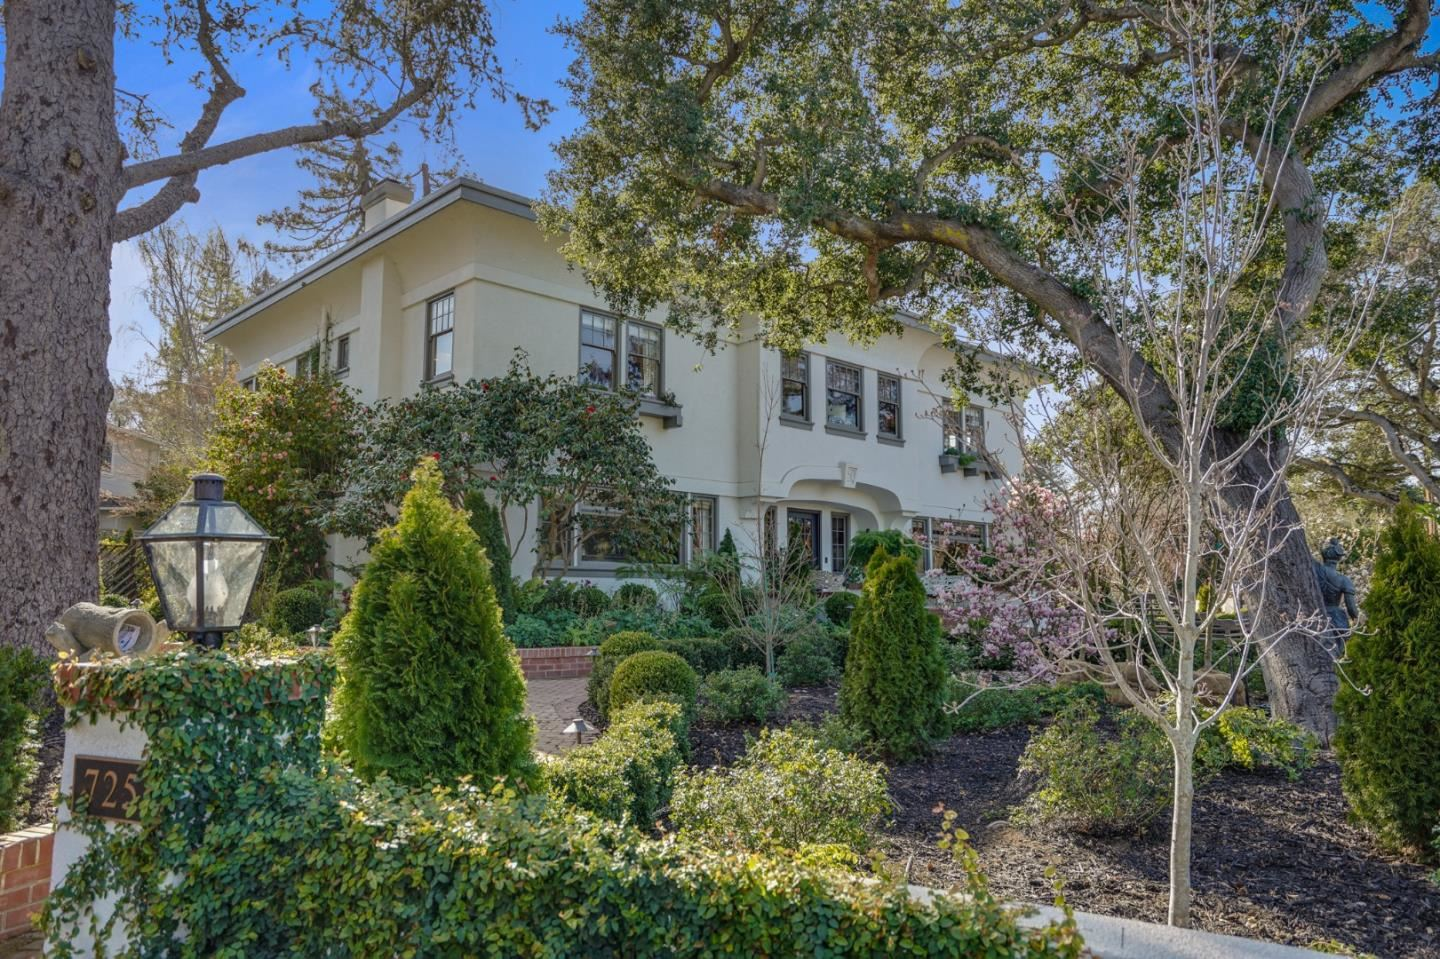 725 Hurlingham Avenue, San Mateo, CA 94402 - #: ML81833382